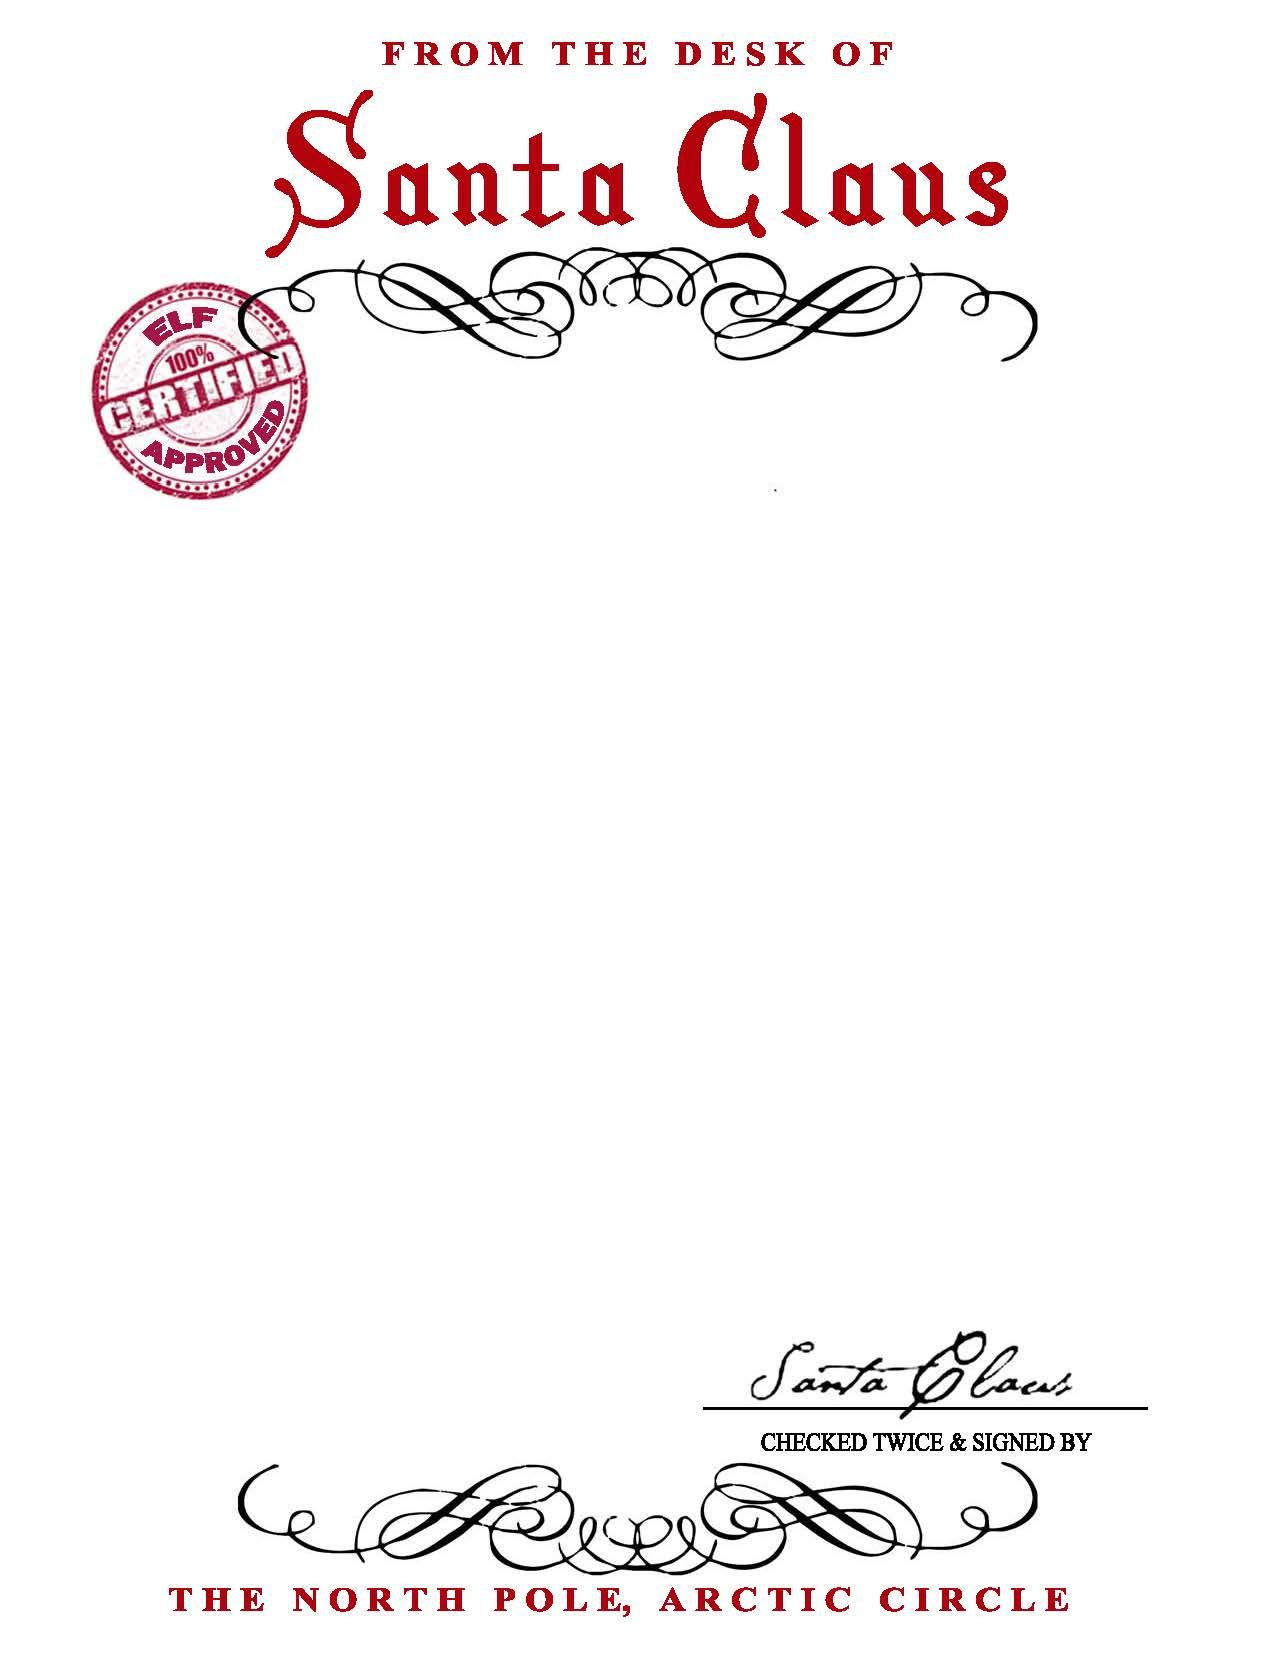 SANTA CLAUS LETTERHEAD.. Will bring lots of joy to children ...